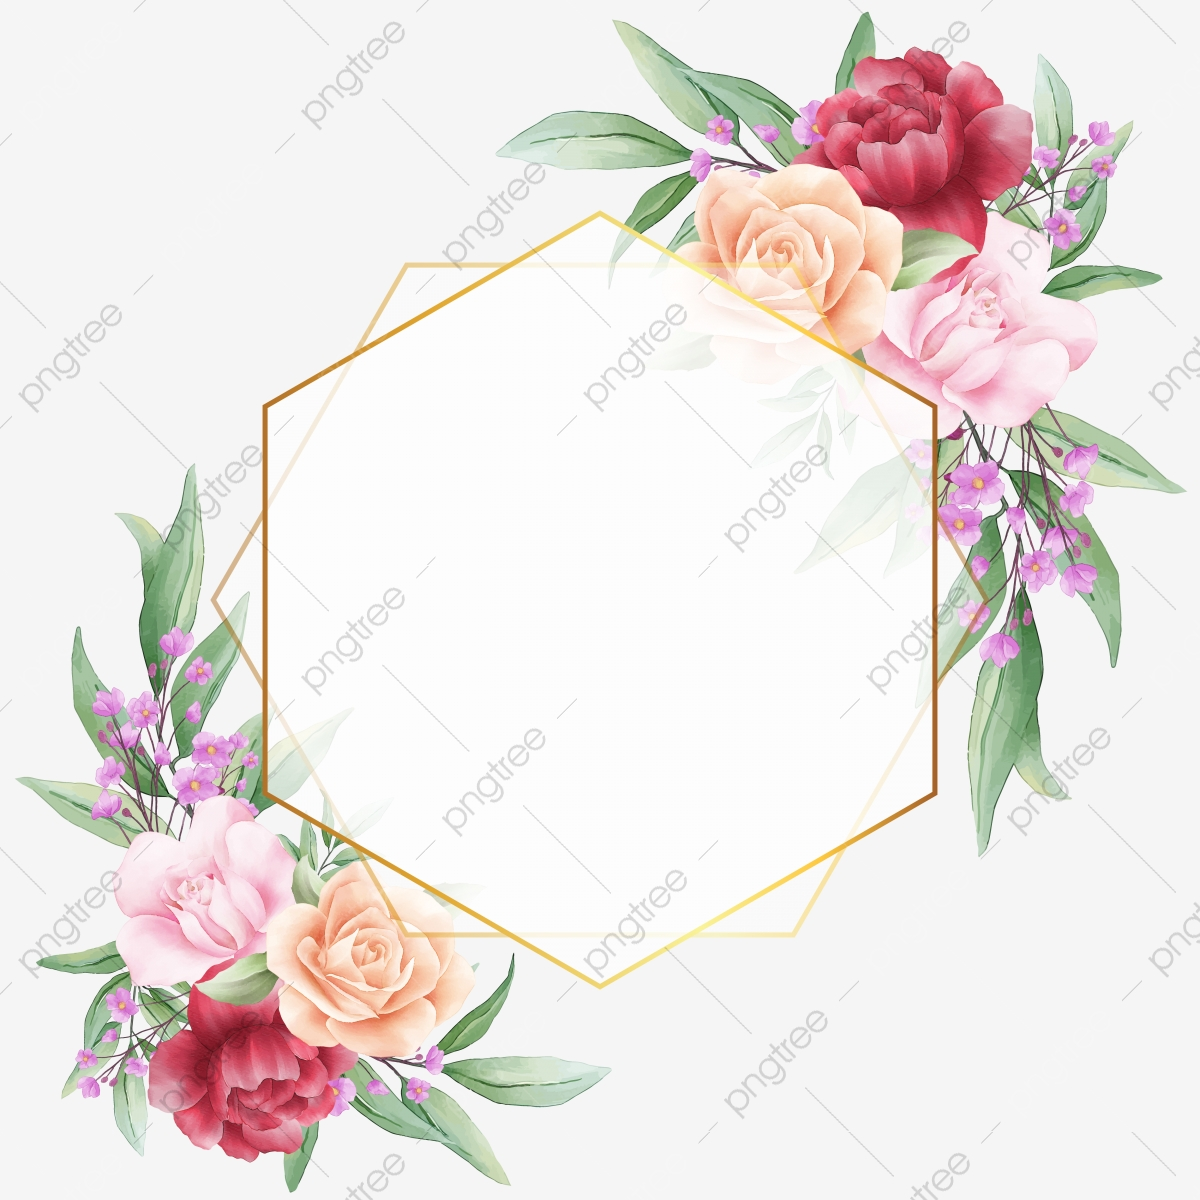 Beautiful Geometric Frame With Watercolor Flowers Border Border Clipart Flowers Wedding Png And Vector With Transparent Background For Free Download